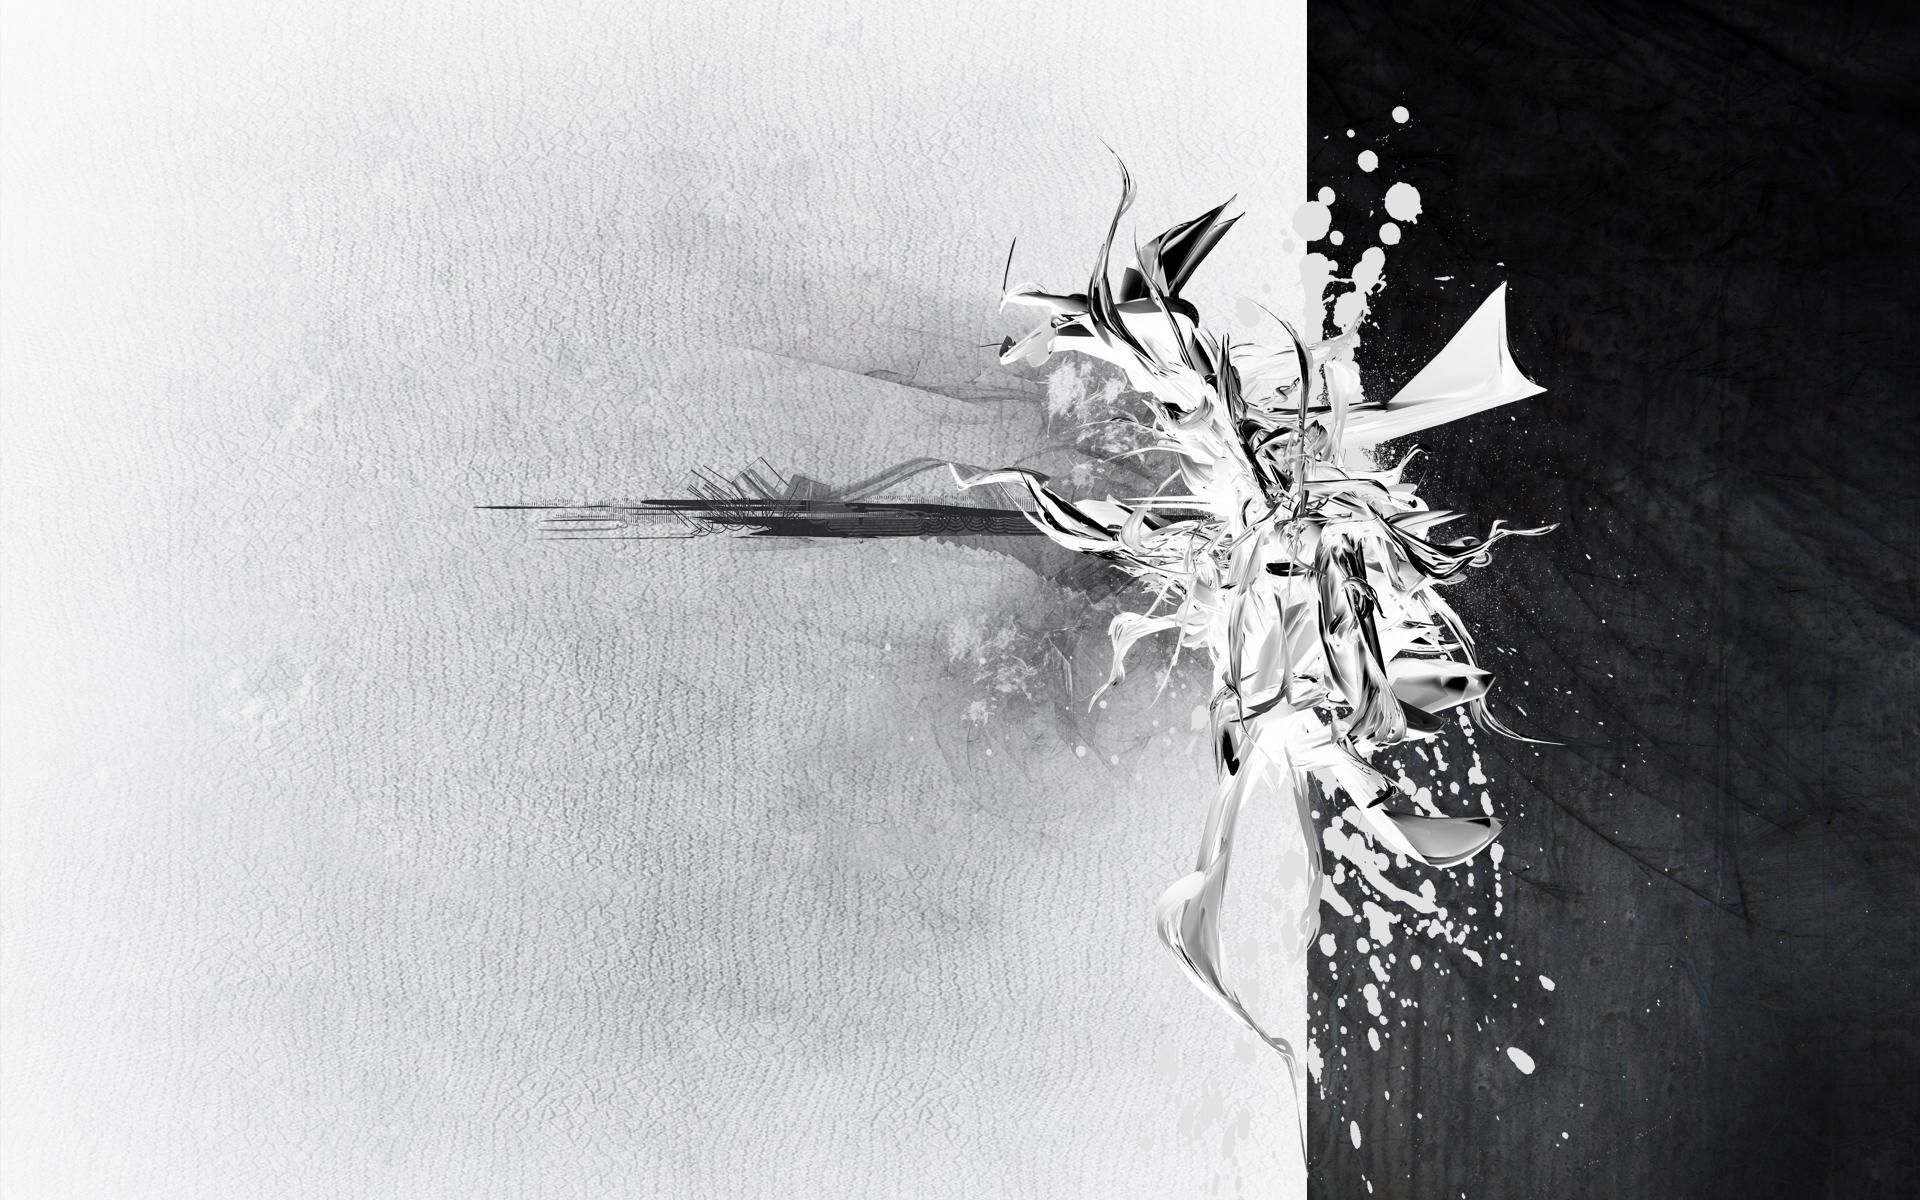 10 Top White And Black Abstract Wallpaper Full Hd 1920 1080